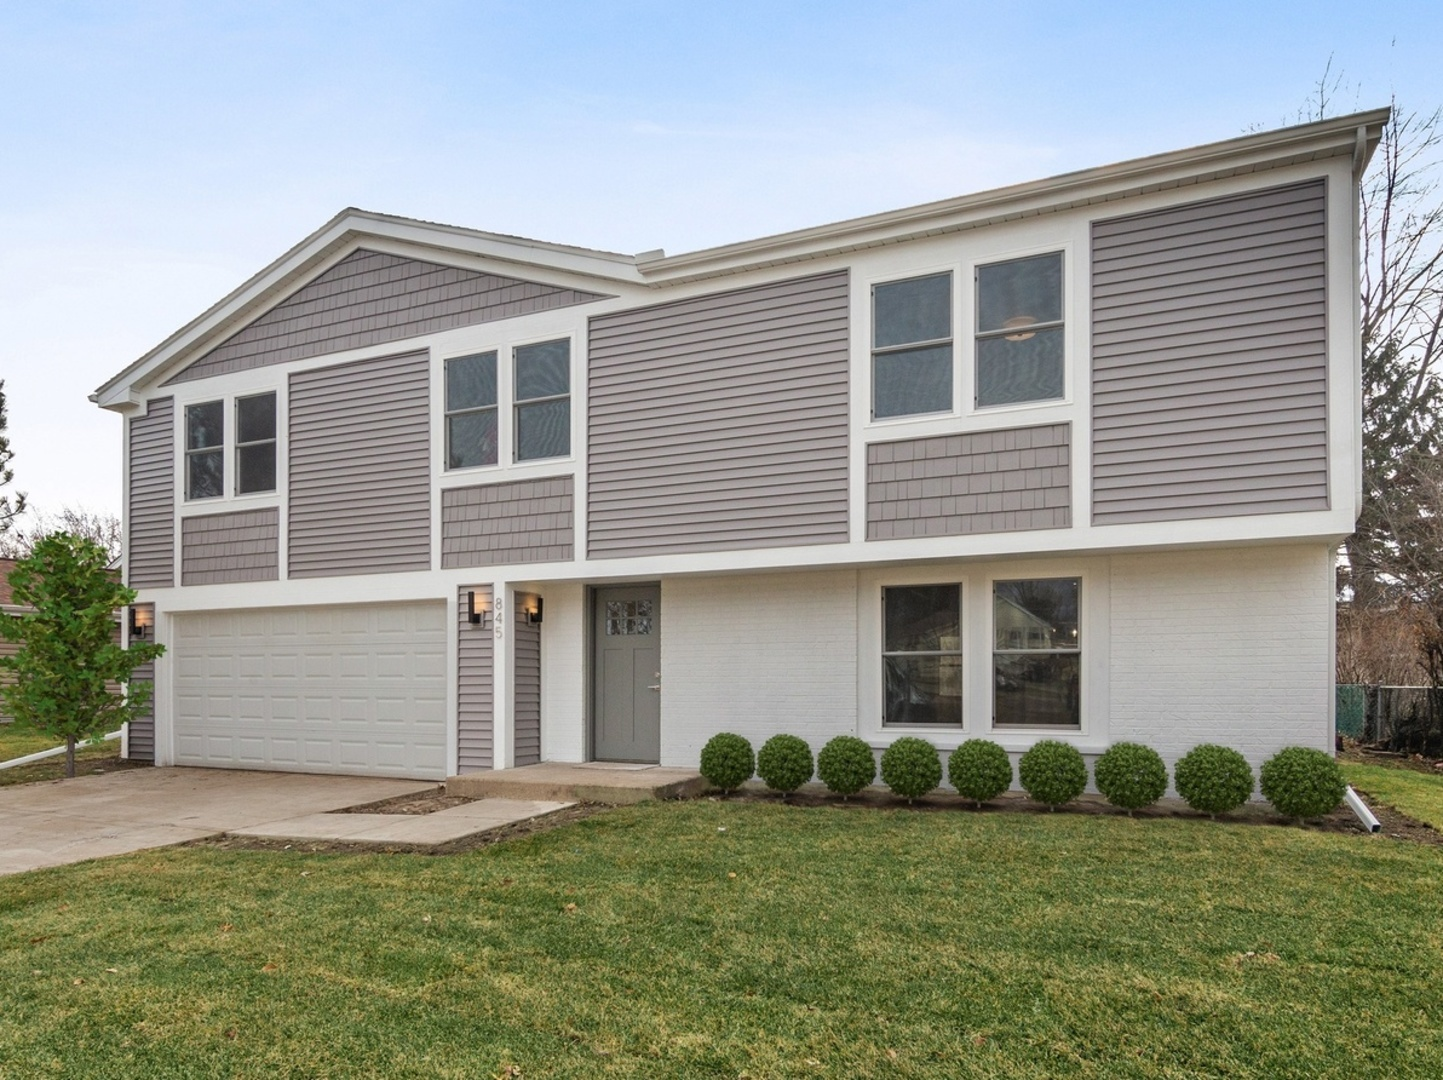 845 Thornton Lane, Buffalo Grove in Cook County, IL 60089 Home for Sale